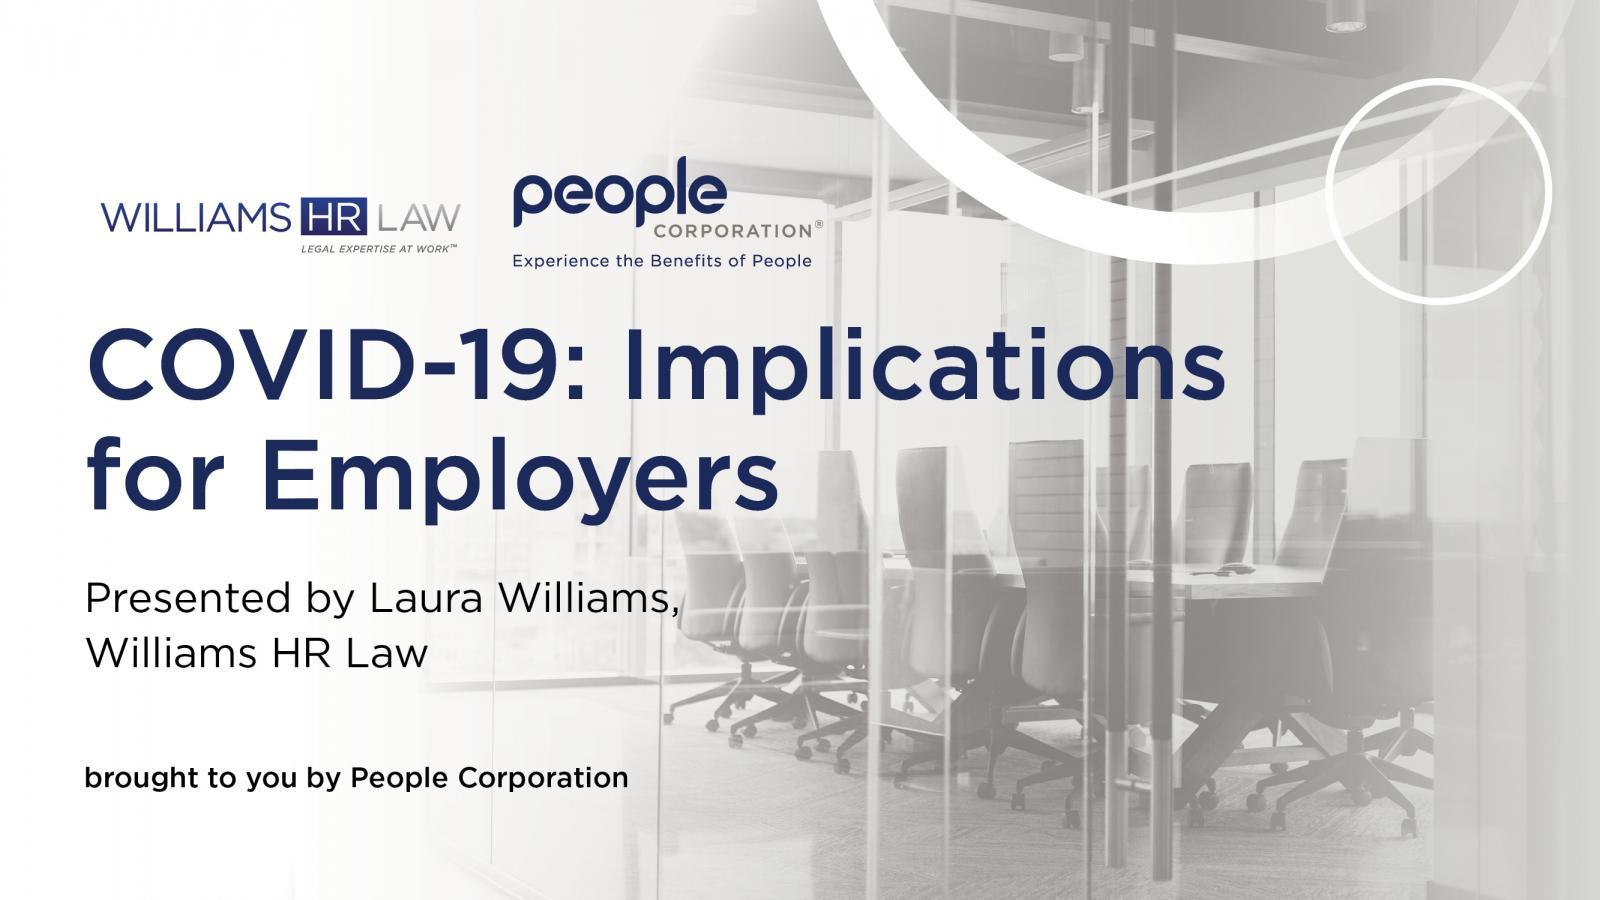 Williams HR Law presents: COVID-19 Implications for Employers